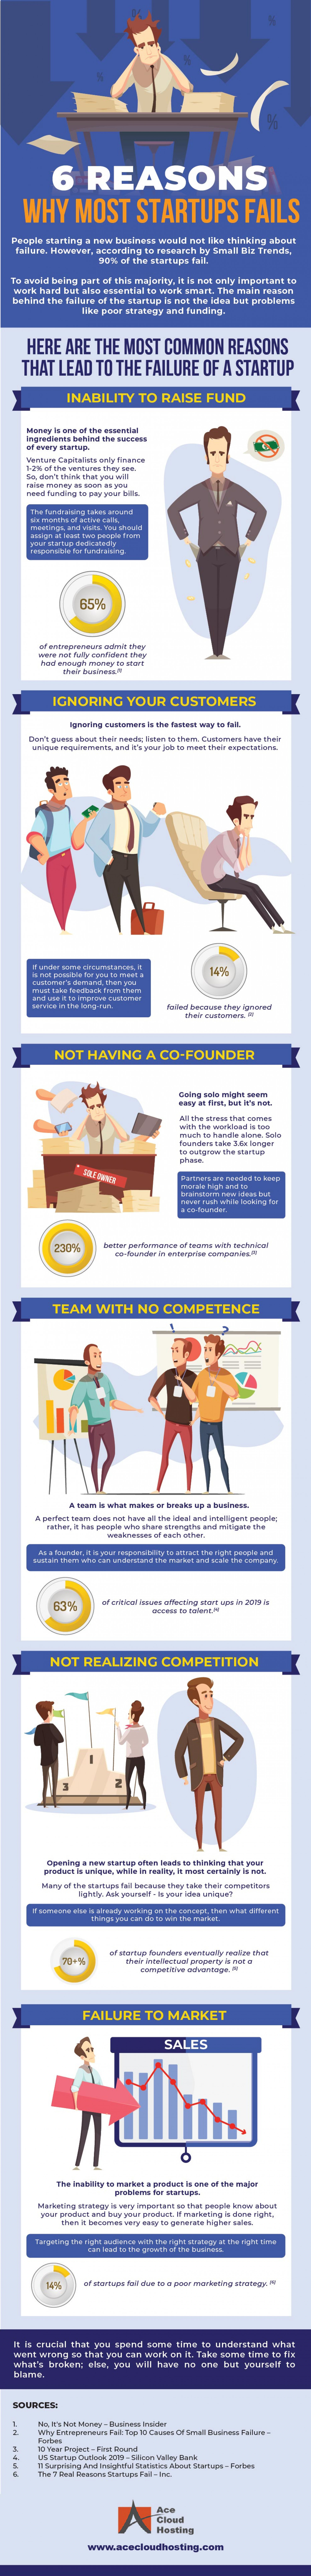 [infographic] 6 Reason Why Startups Fails Infographic